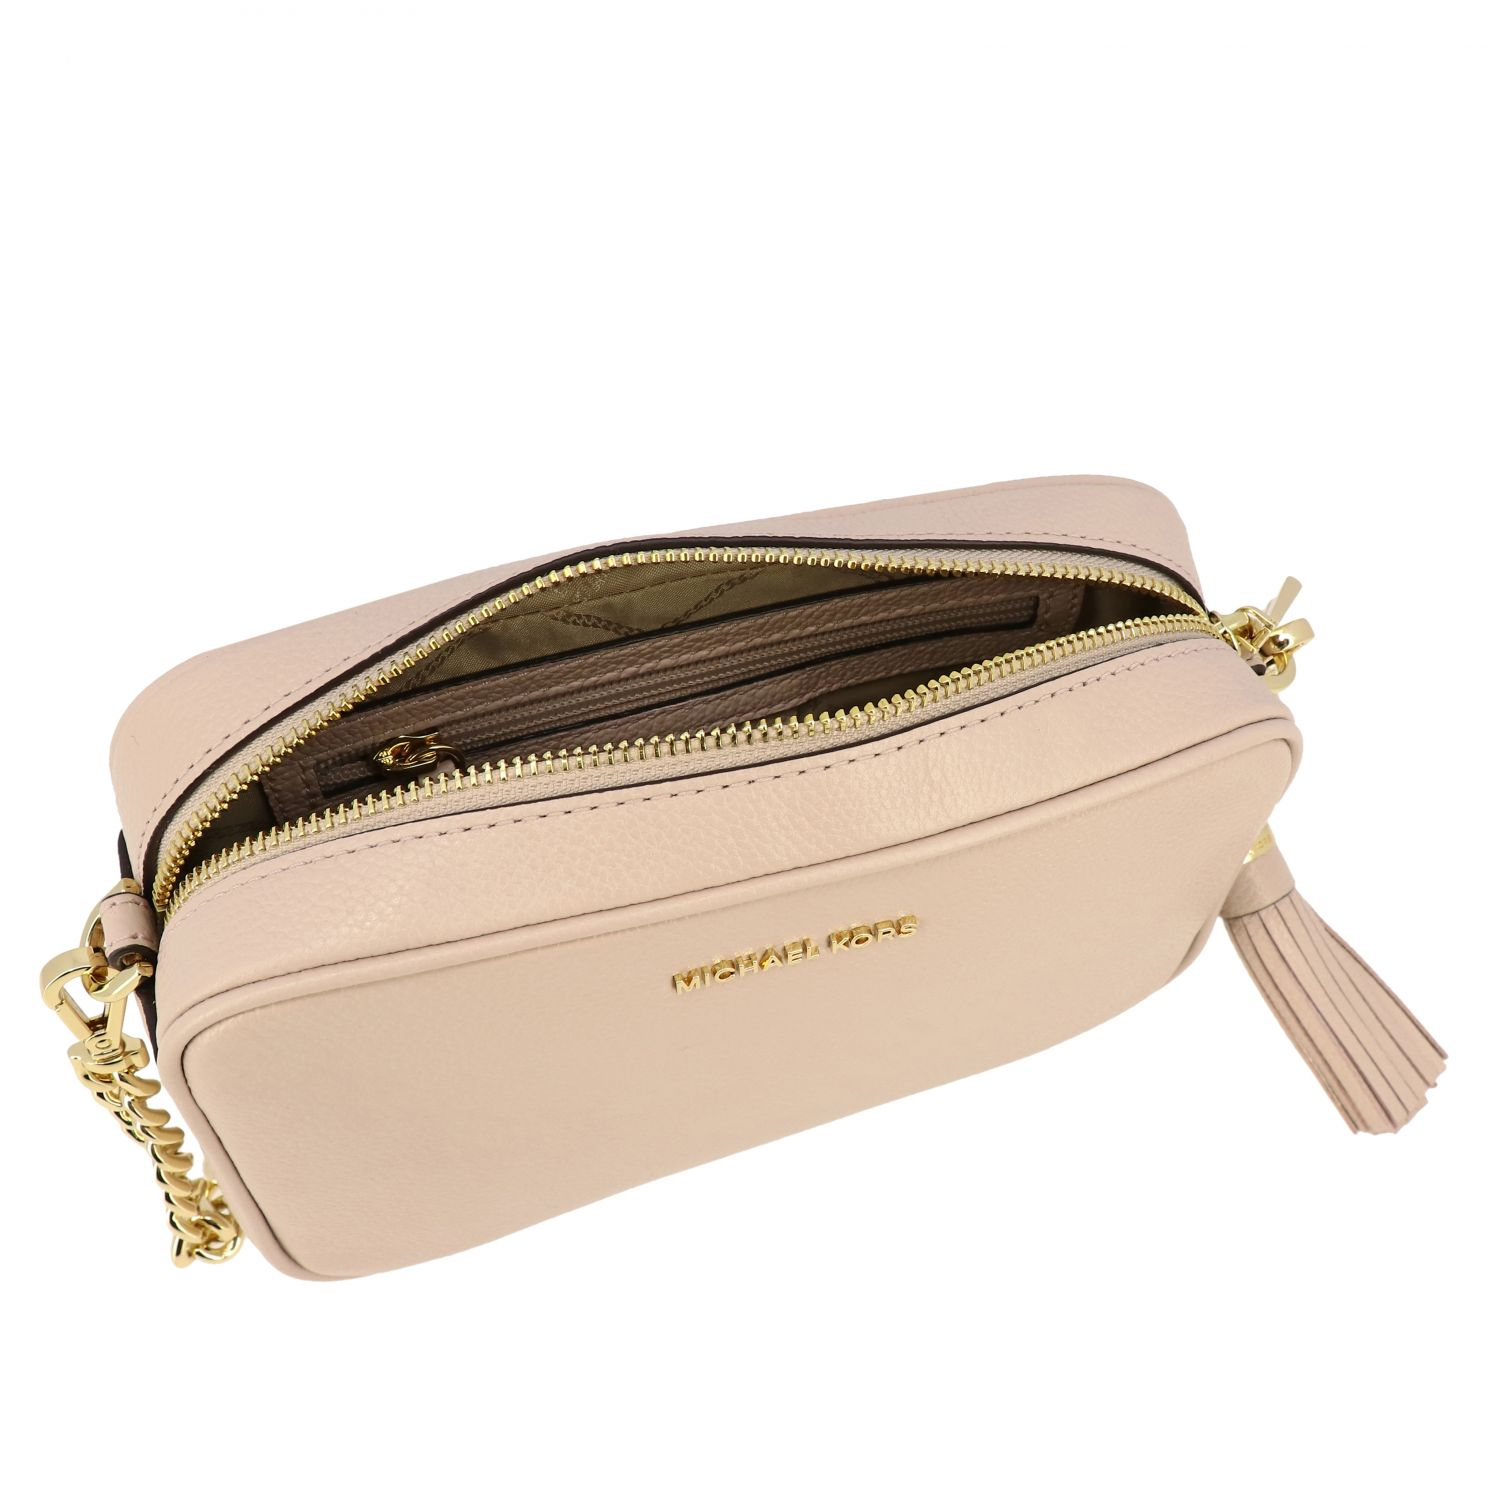 Borsa Jet Set camera bag Michael Michael Kors in pelle cipria 5